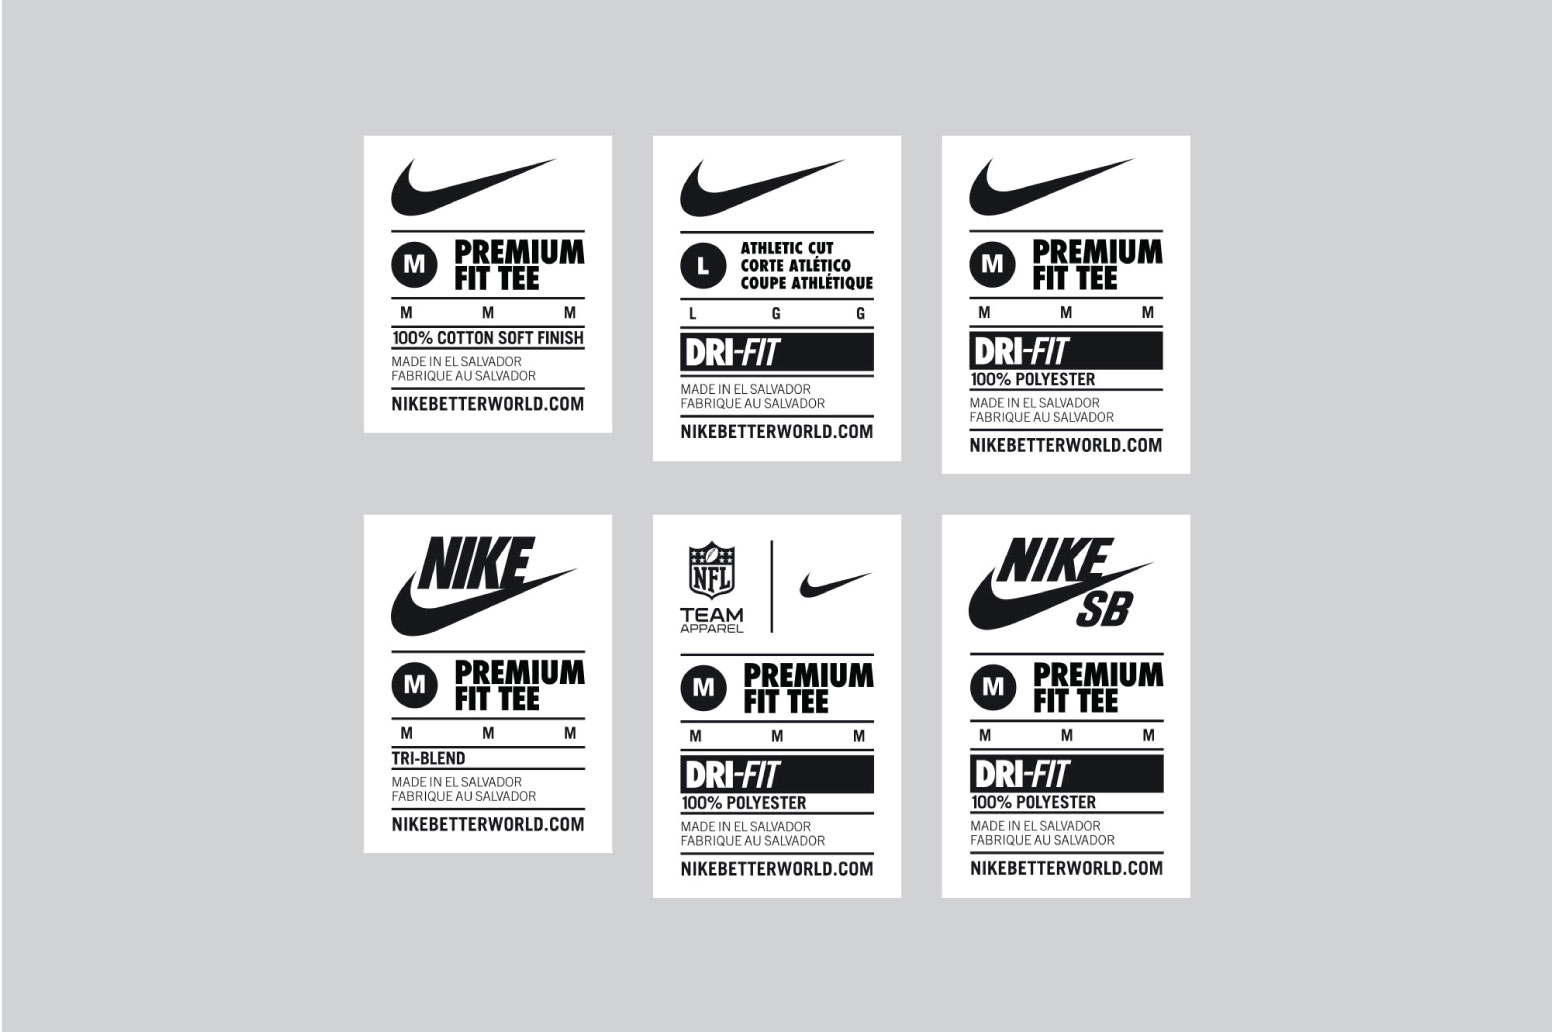 001 nike internal size tag t-shirt apparel design